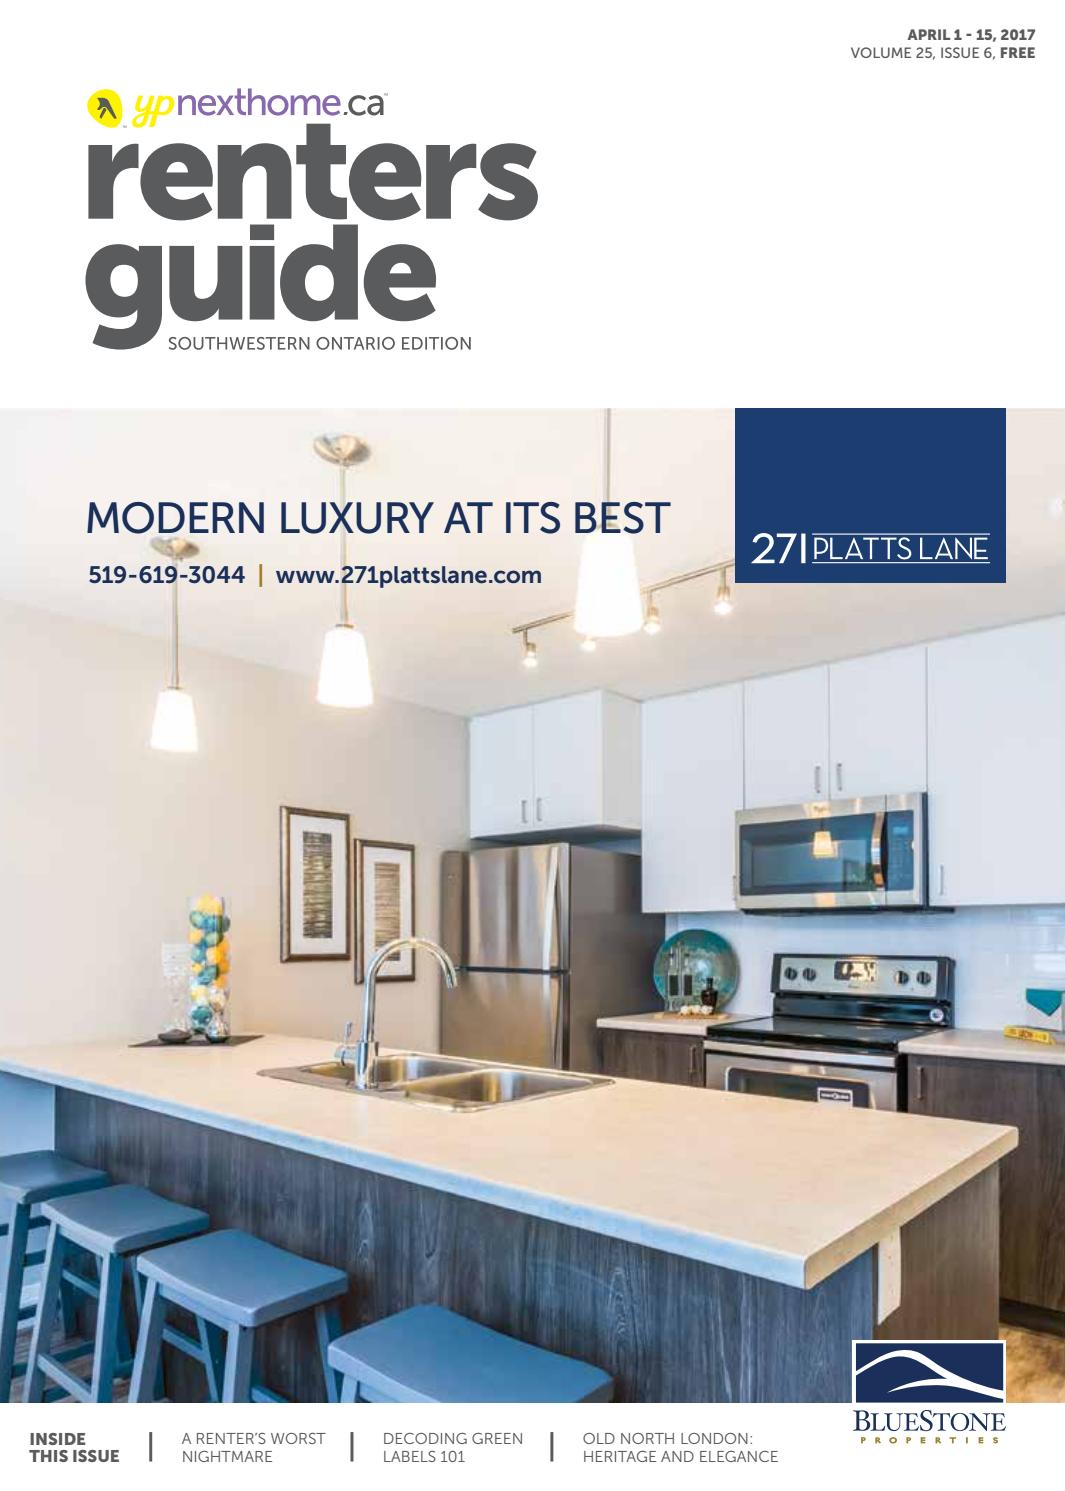 South Western Ontario Renters Guide - Apr 1, 2017 by NextHome - issuu